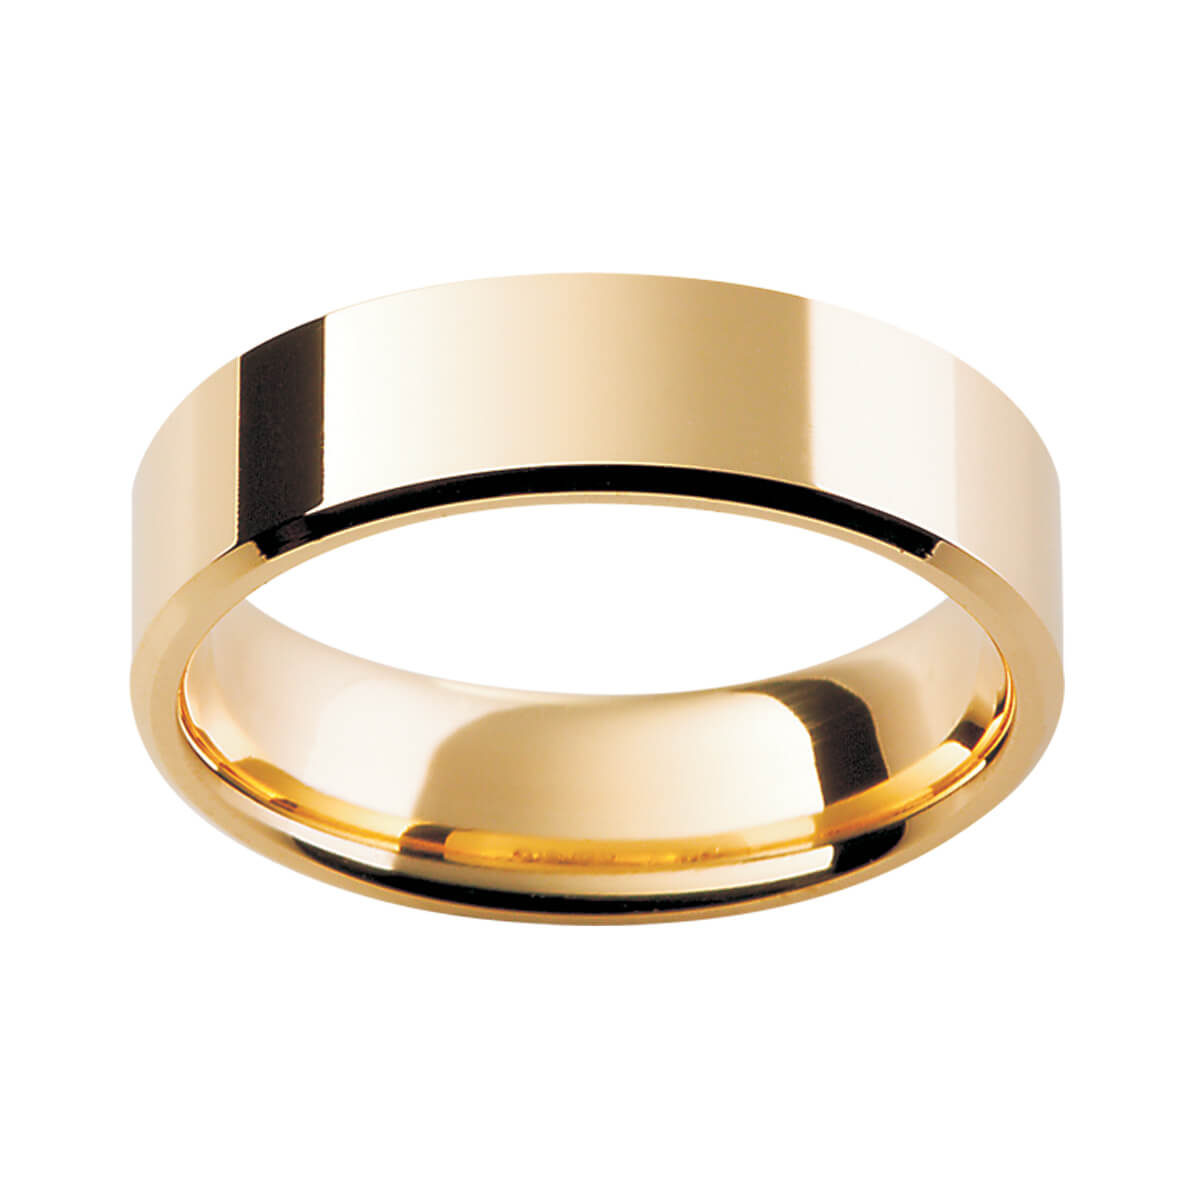 FB men's ring flat band with bevelled edges